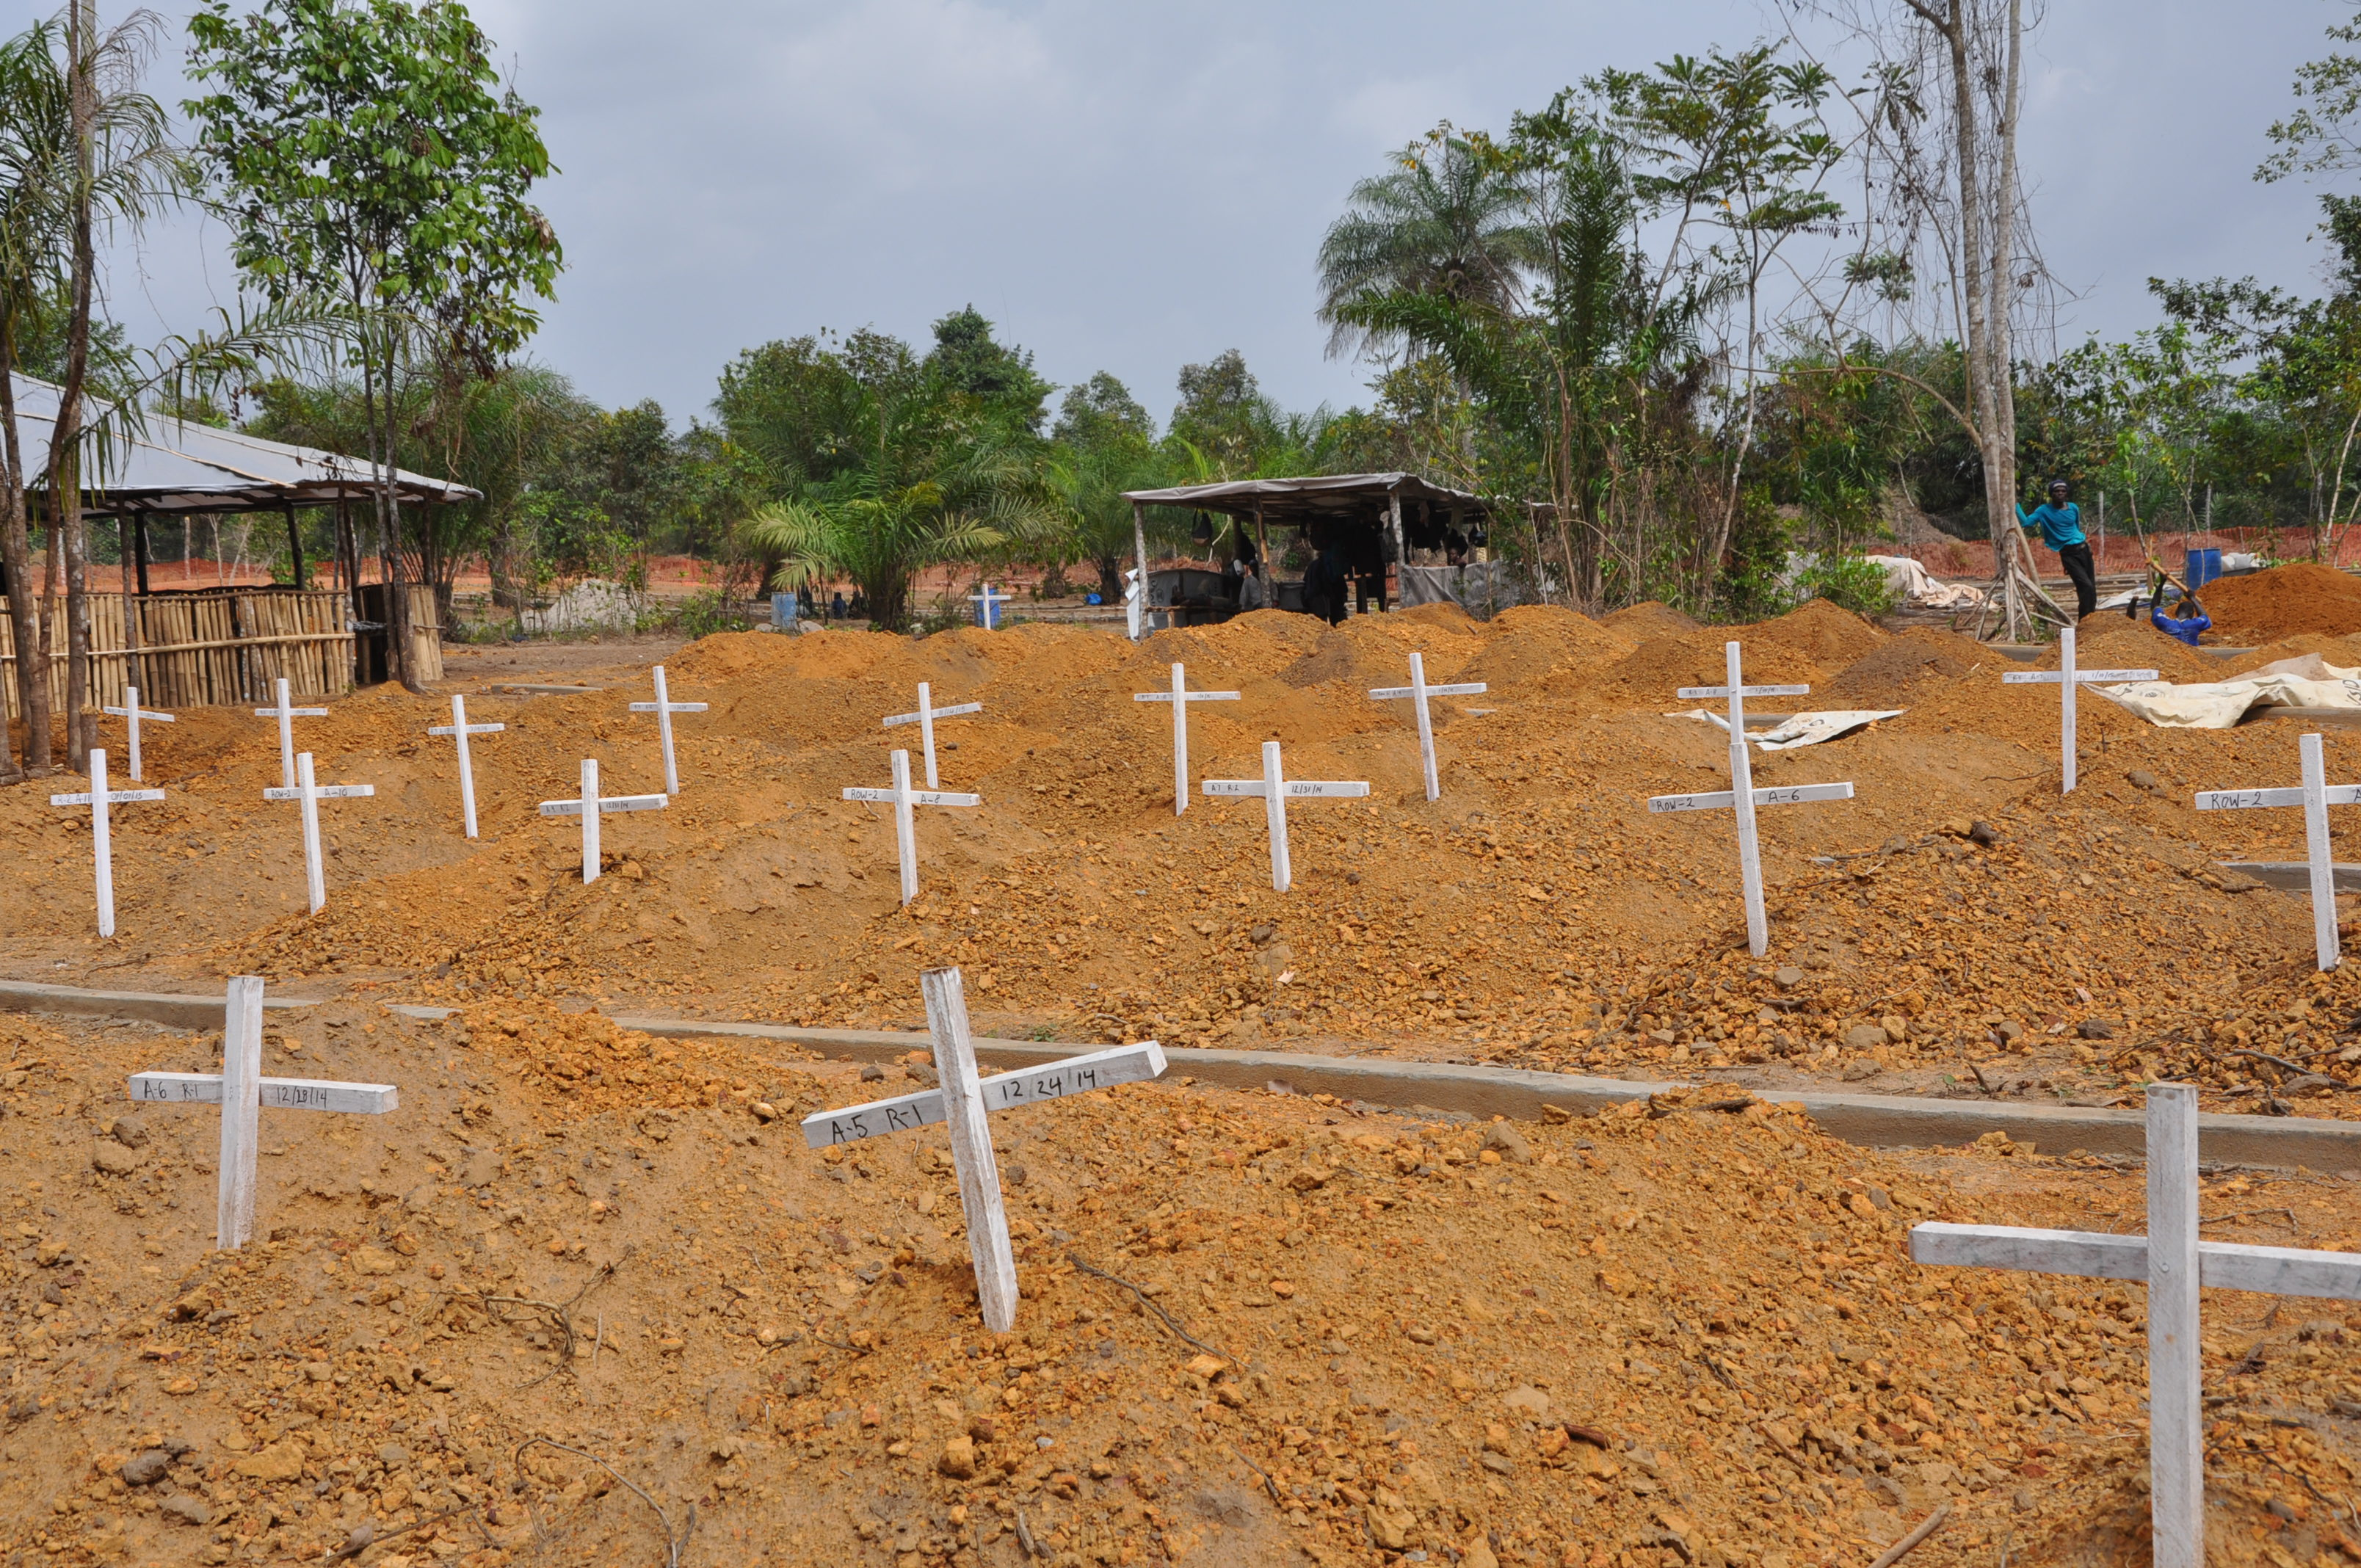 The cemetery on Disco Hill outside the capital Monrovia. As of February 5th it was the final resting place for 353 people. The cemetery opened in December 2014 and serves Monteserrado and lower Margibi counties.